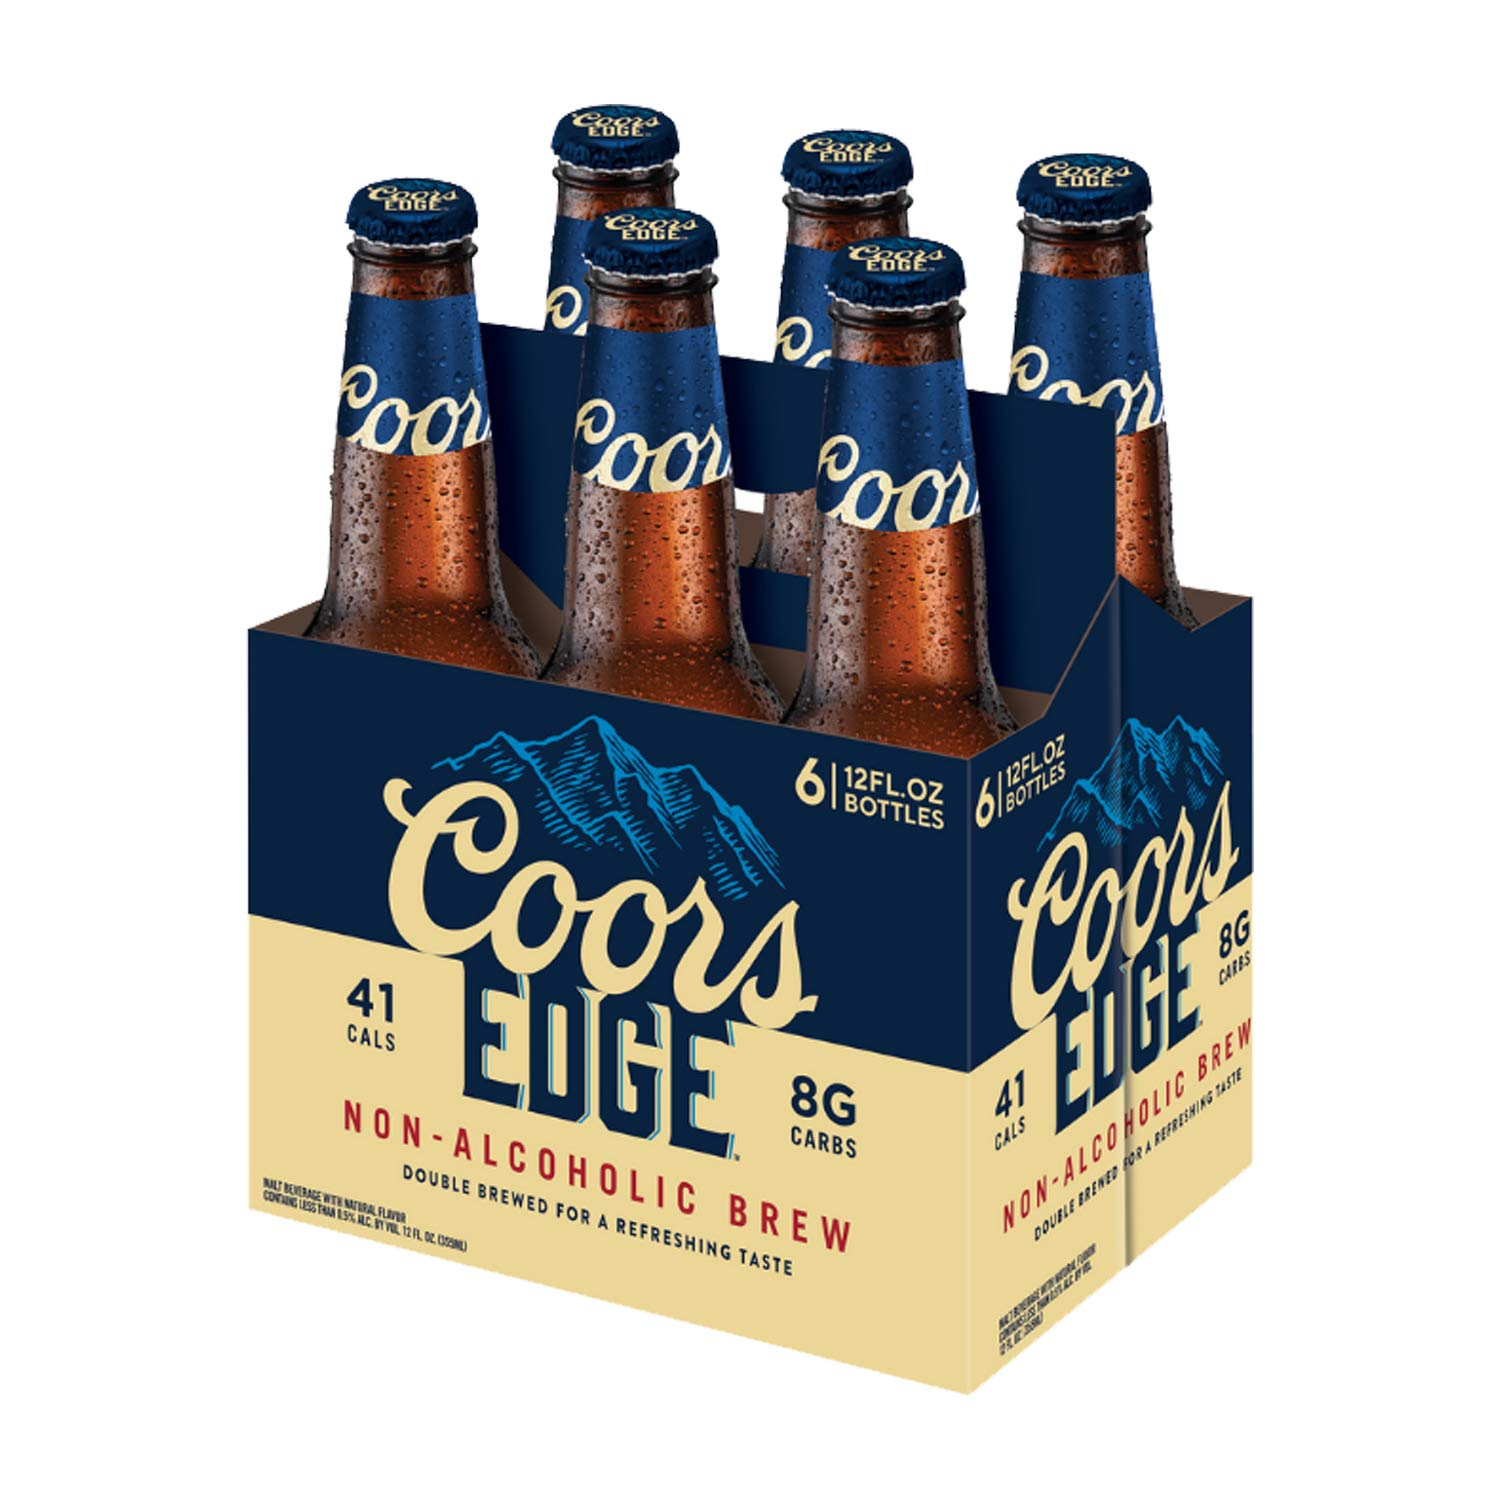 Amazon.com : Coors Non-alcoholic Beer (6 Bottles) : Grocery ...